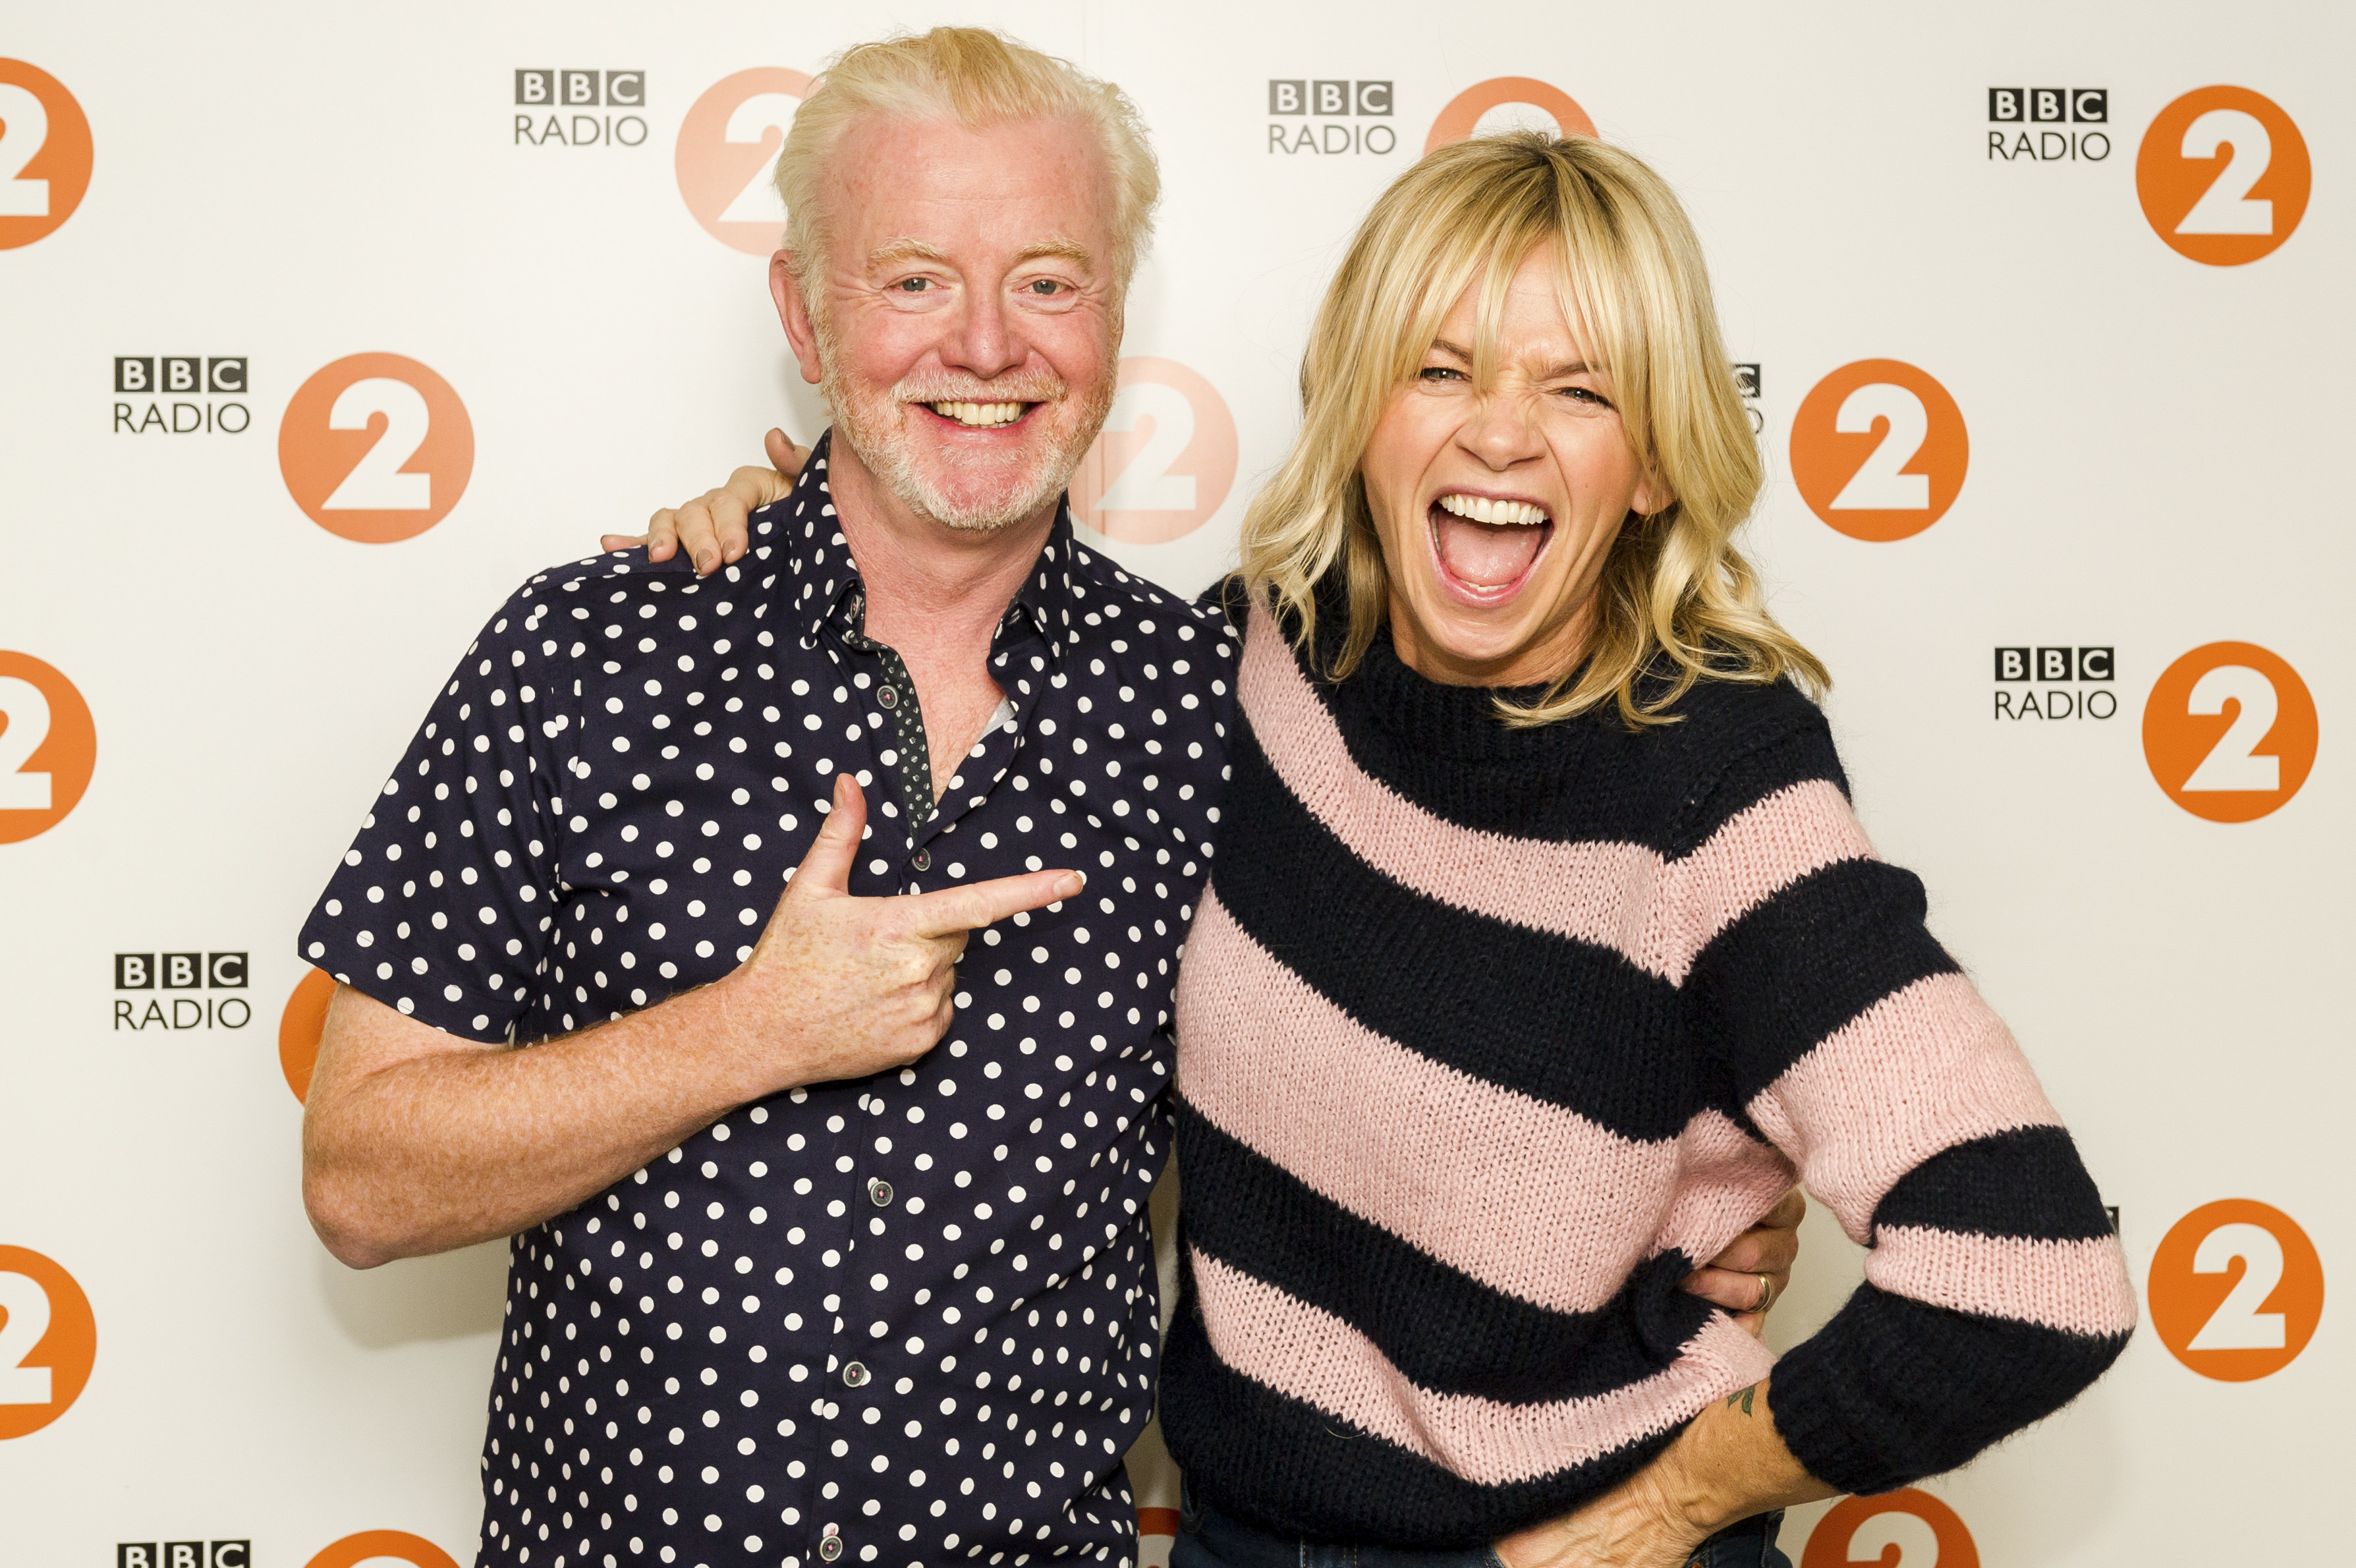 Zoe Ball takes over the Radio 2 breakfast show from Chris Evans in the new year (BBC)